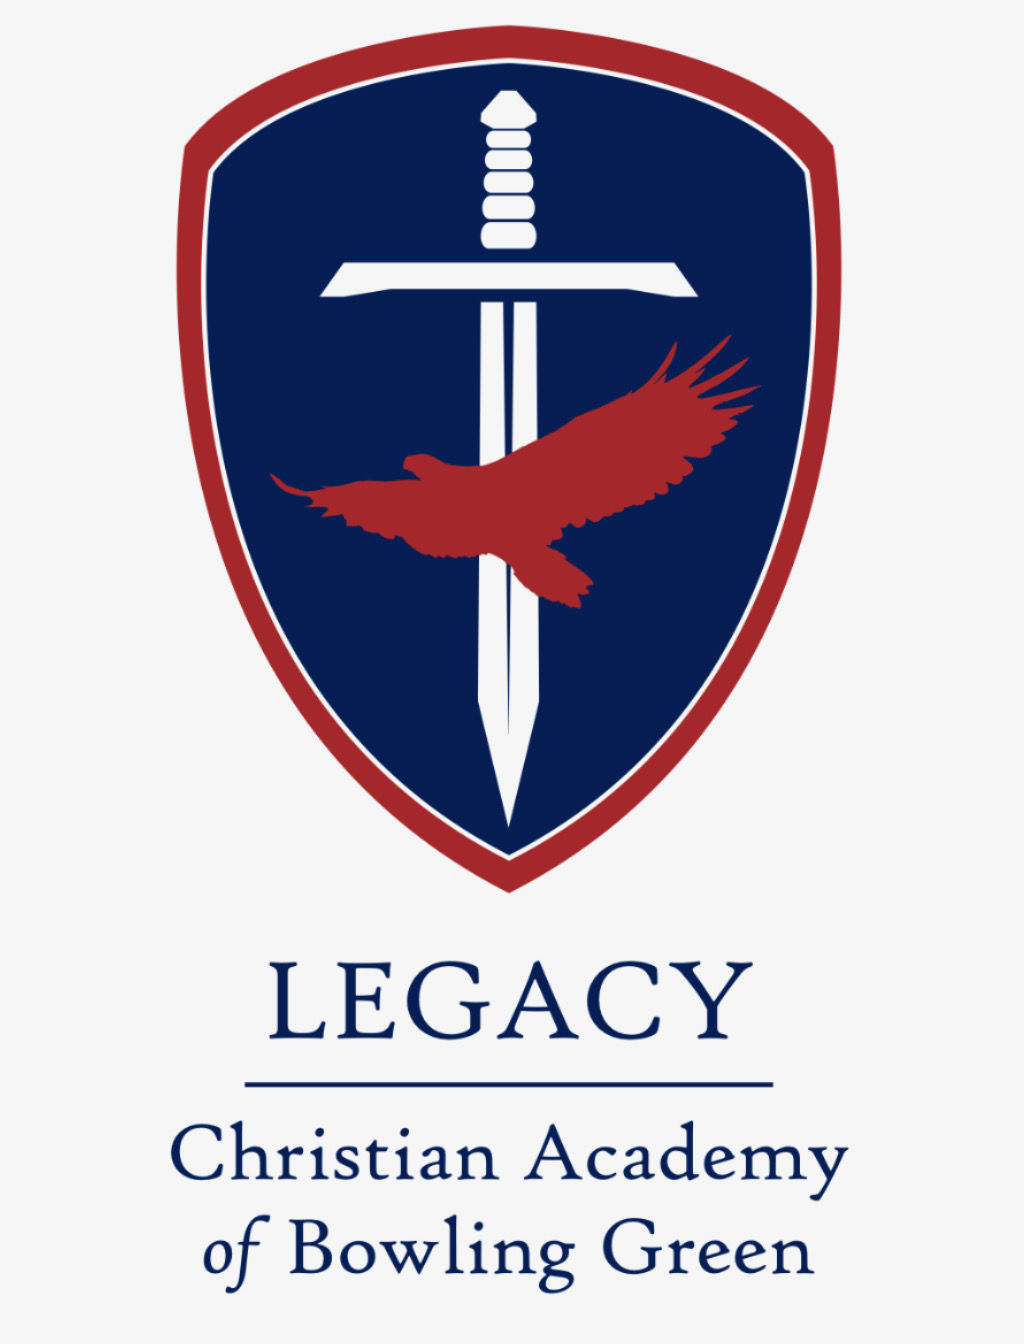 New Christian School to open in BG after merger